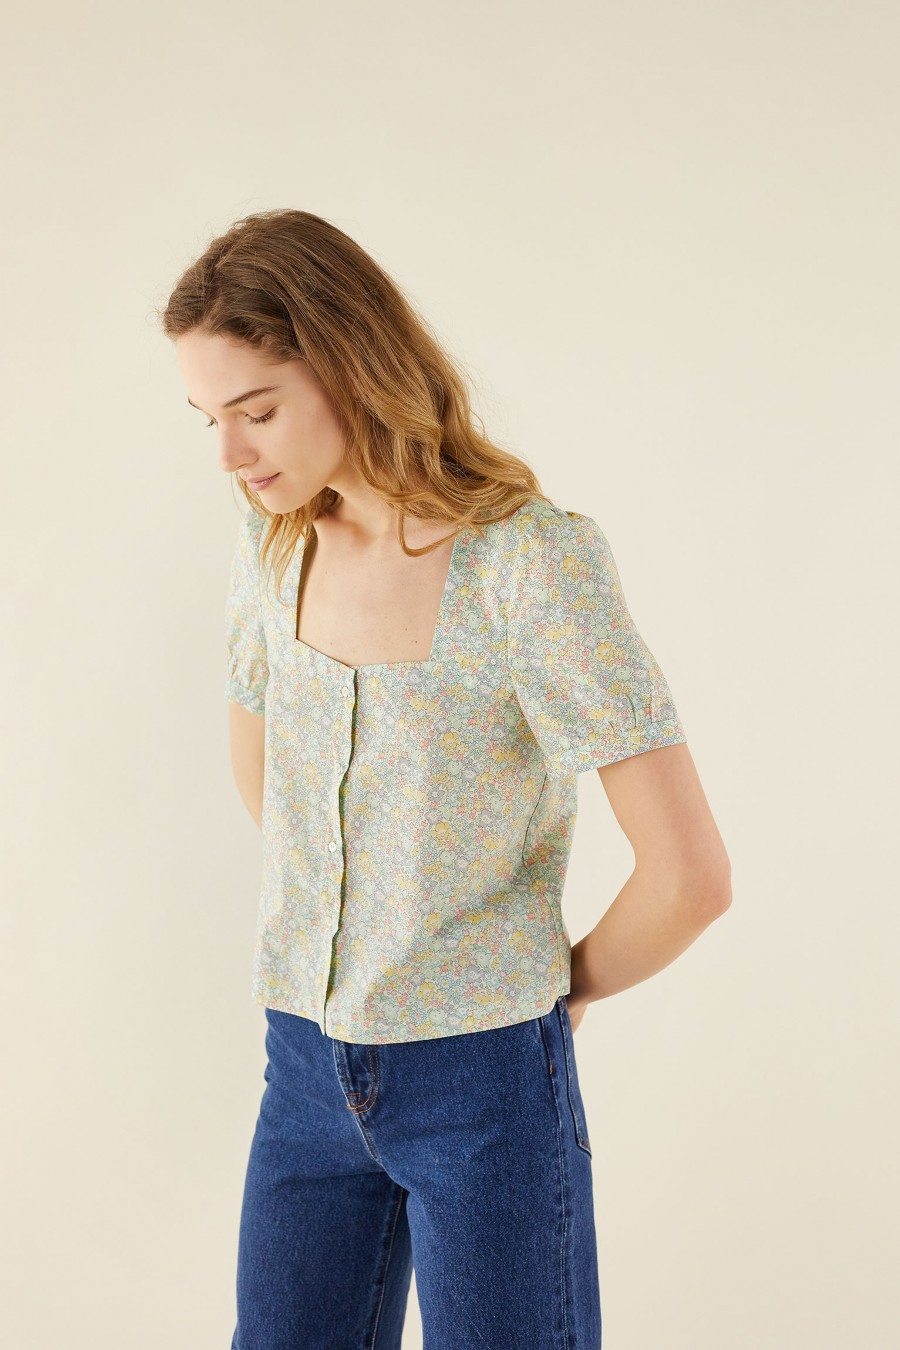 square-neck top with liberty prints